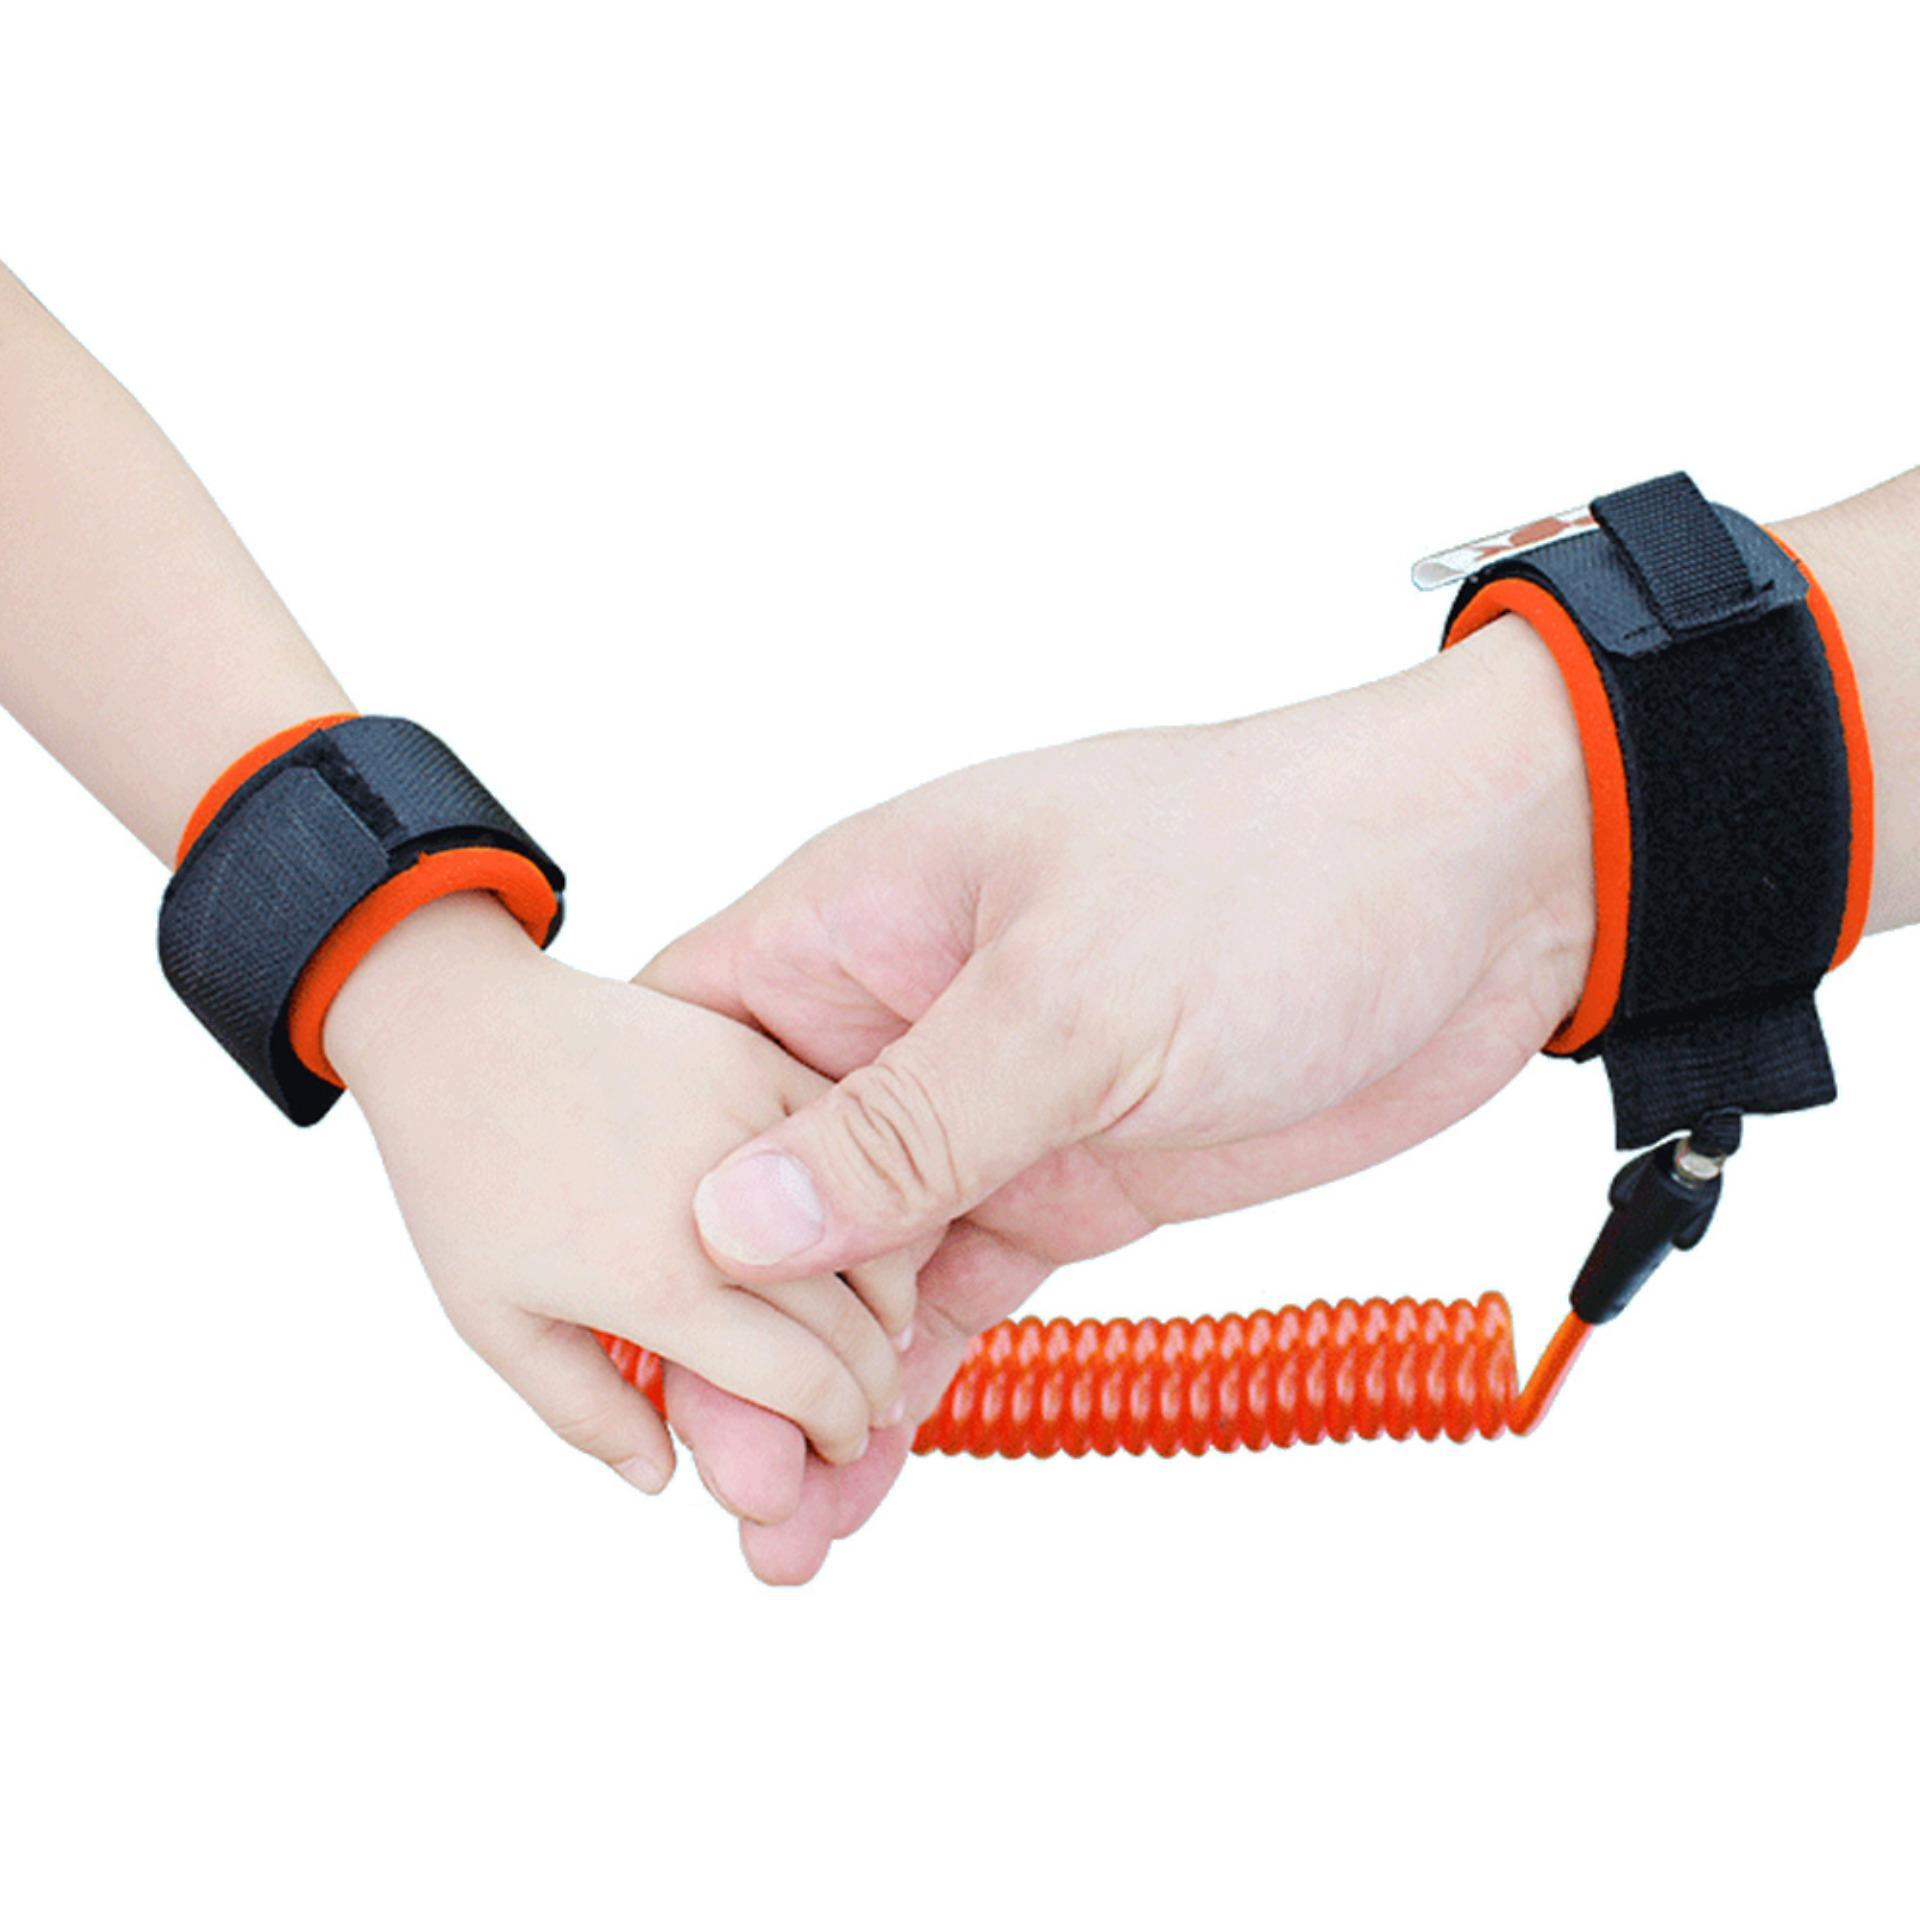 ... 1.5m Baby Child Anti Lost Safety Wrist Link Rope Band Leash Beltwith Hook and Loop ...